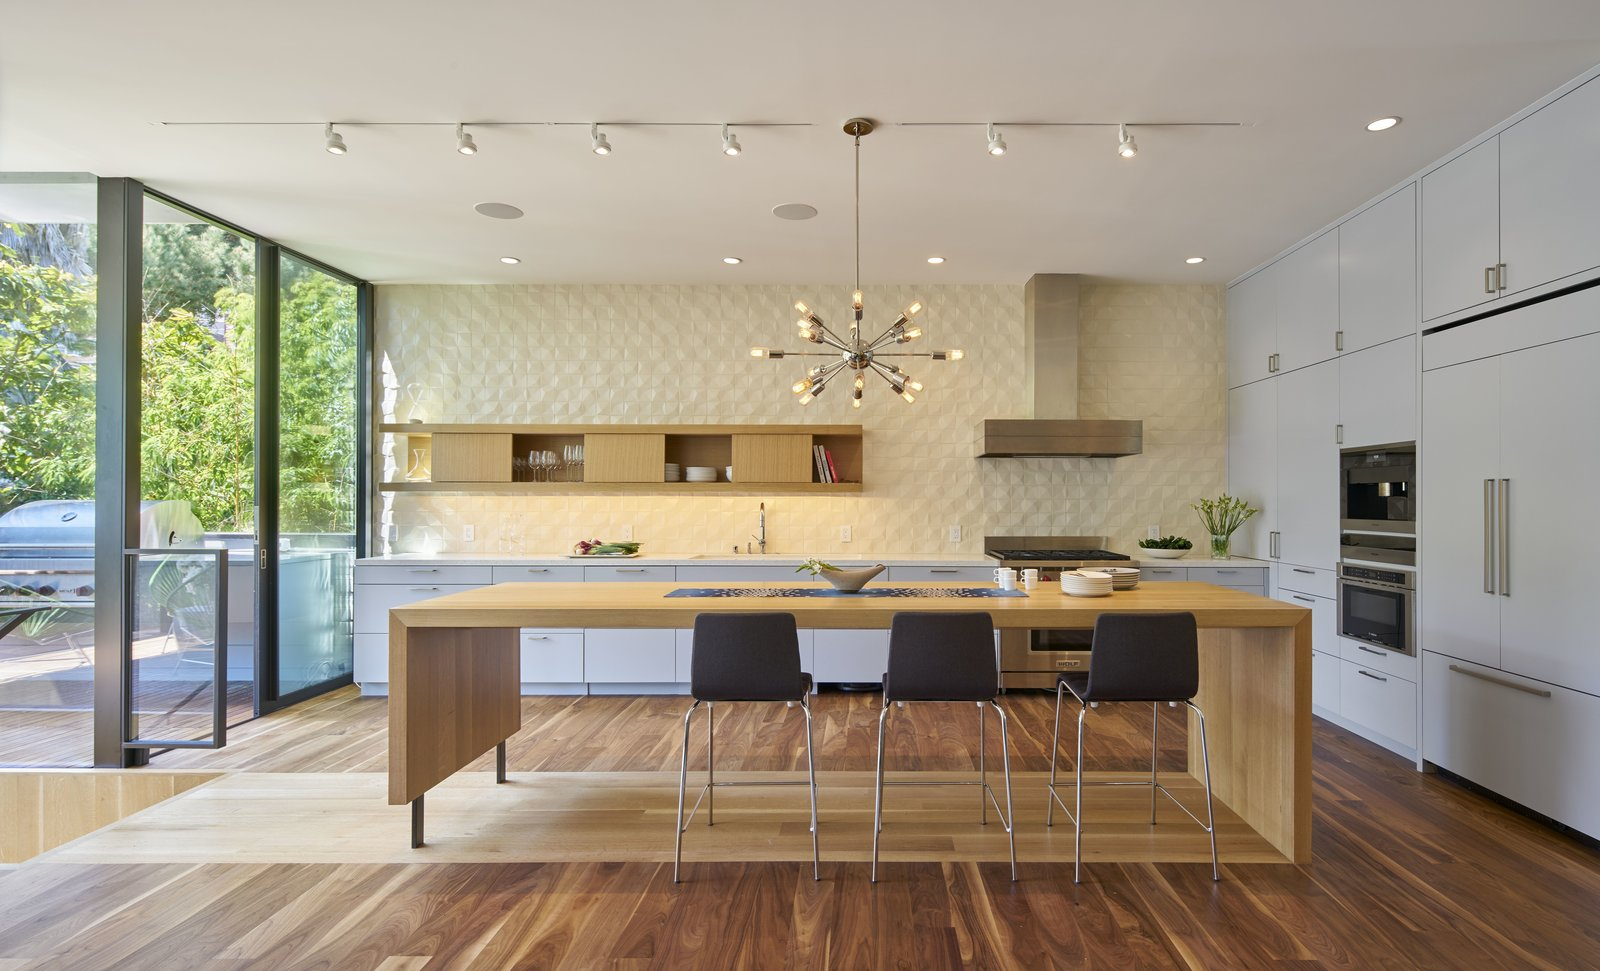 Tagged: Kitchen, Dark Hardwood Floor, Colorful Cabinet, Wood Cabinet, Light Hardwood Floor, Pendant Lighting, Track Lighting, Refrigerator, Wall Oven, Microwave, Range, and Range Hood.  29th Street Residence by Schwartz and Architecture